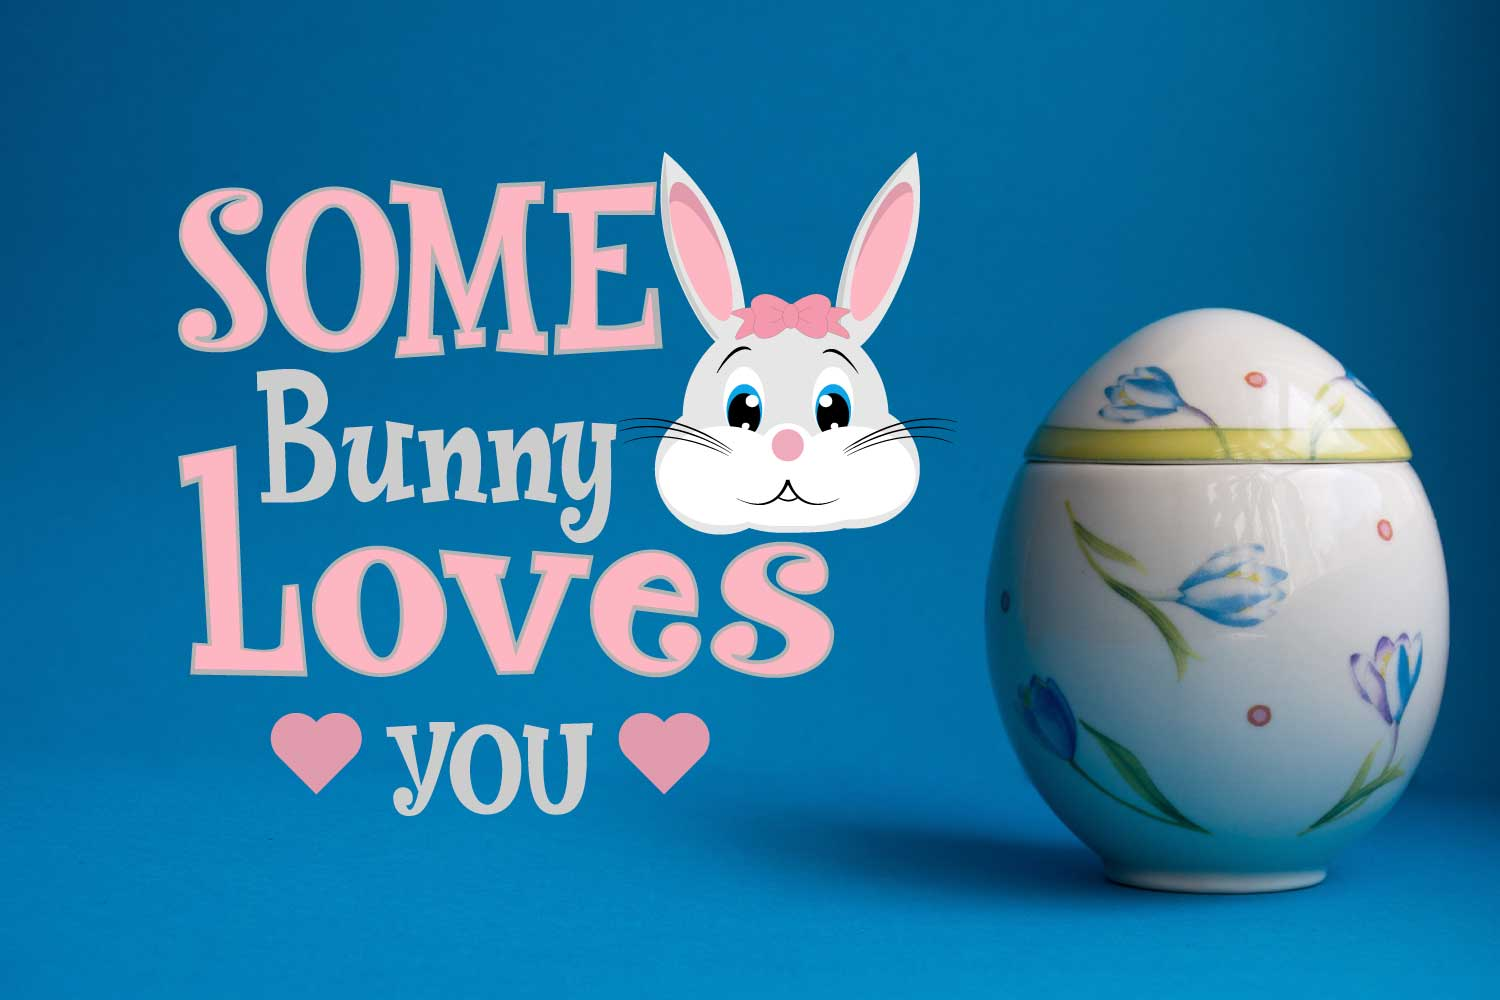 Easter Svg,Some Bunny Loves You ,Easter Bunny Svg example image 1